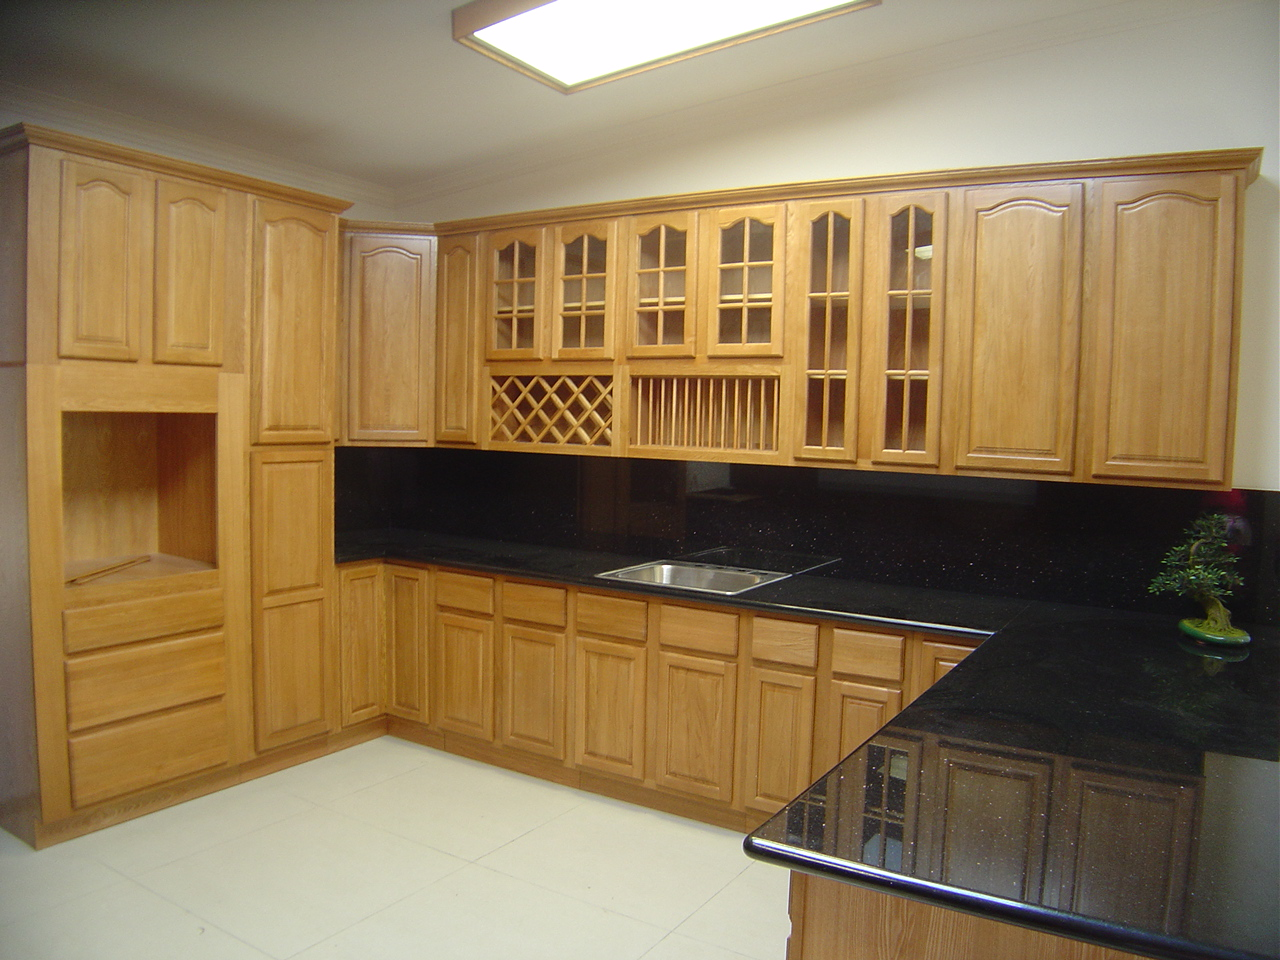 kitchen cupboard ideas on Cabinets for Kitchen: Most Popular Wood Kitchen Cabinets